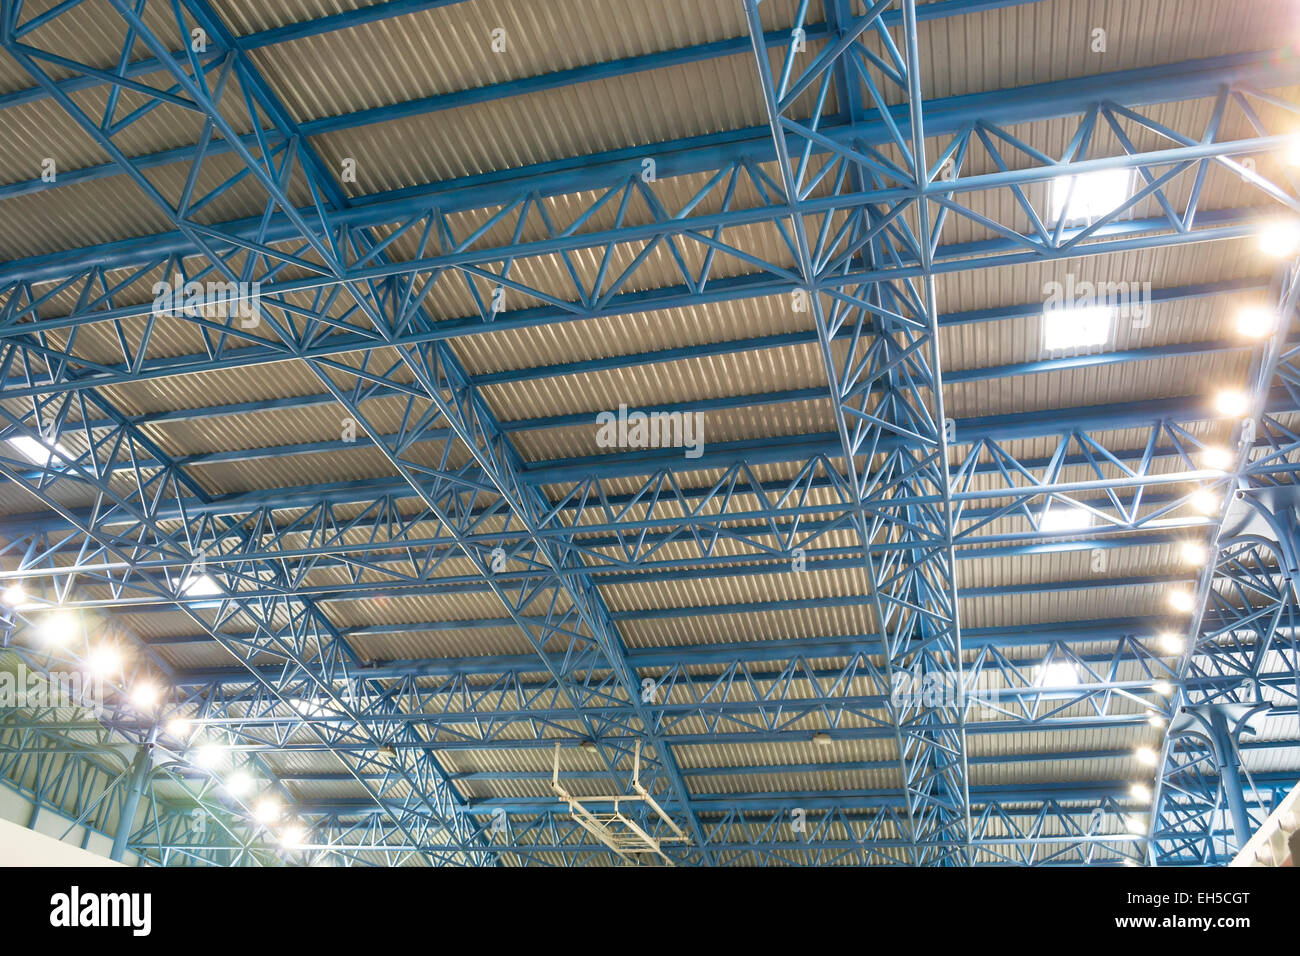 Metallic frame structure supporting a roof with artificial and natural lighting - Stock Image